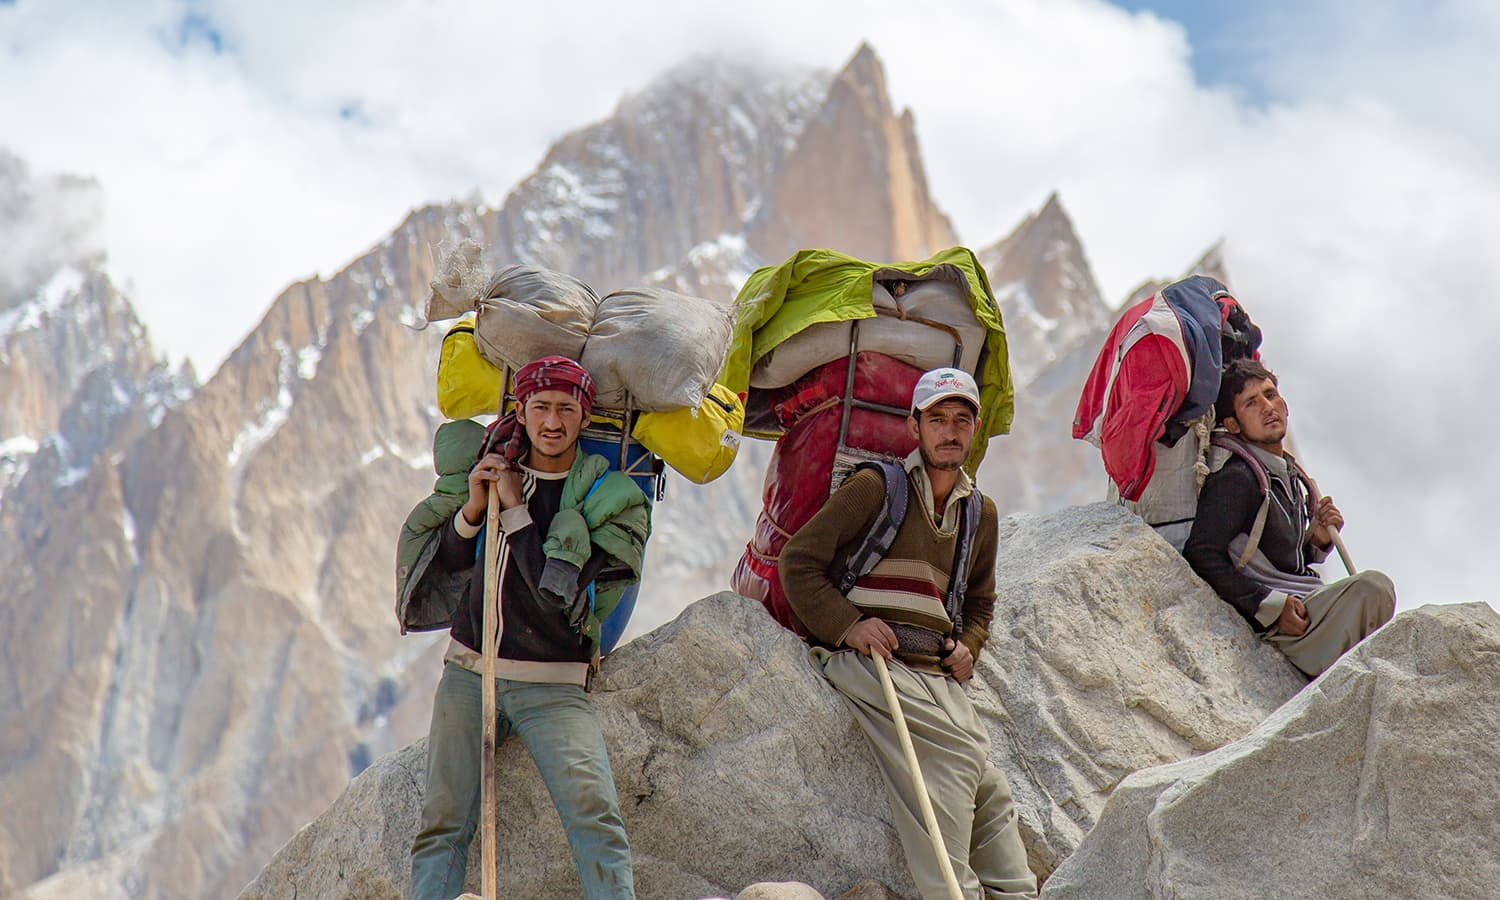 The true heroes of Karakoram. Trekking or climbing would not be possible without their efforts.